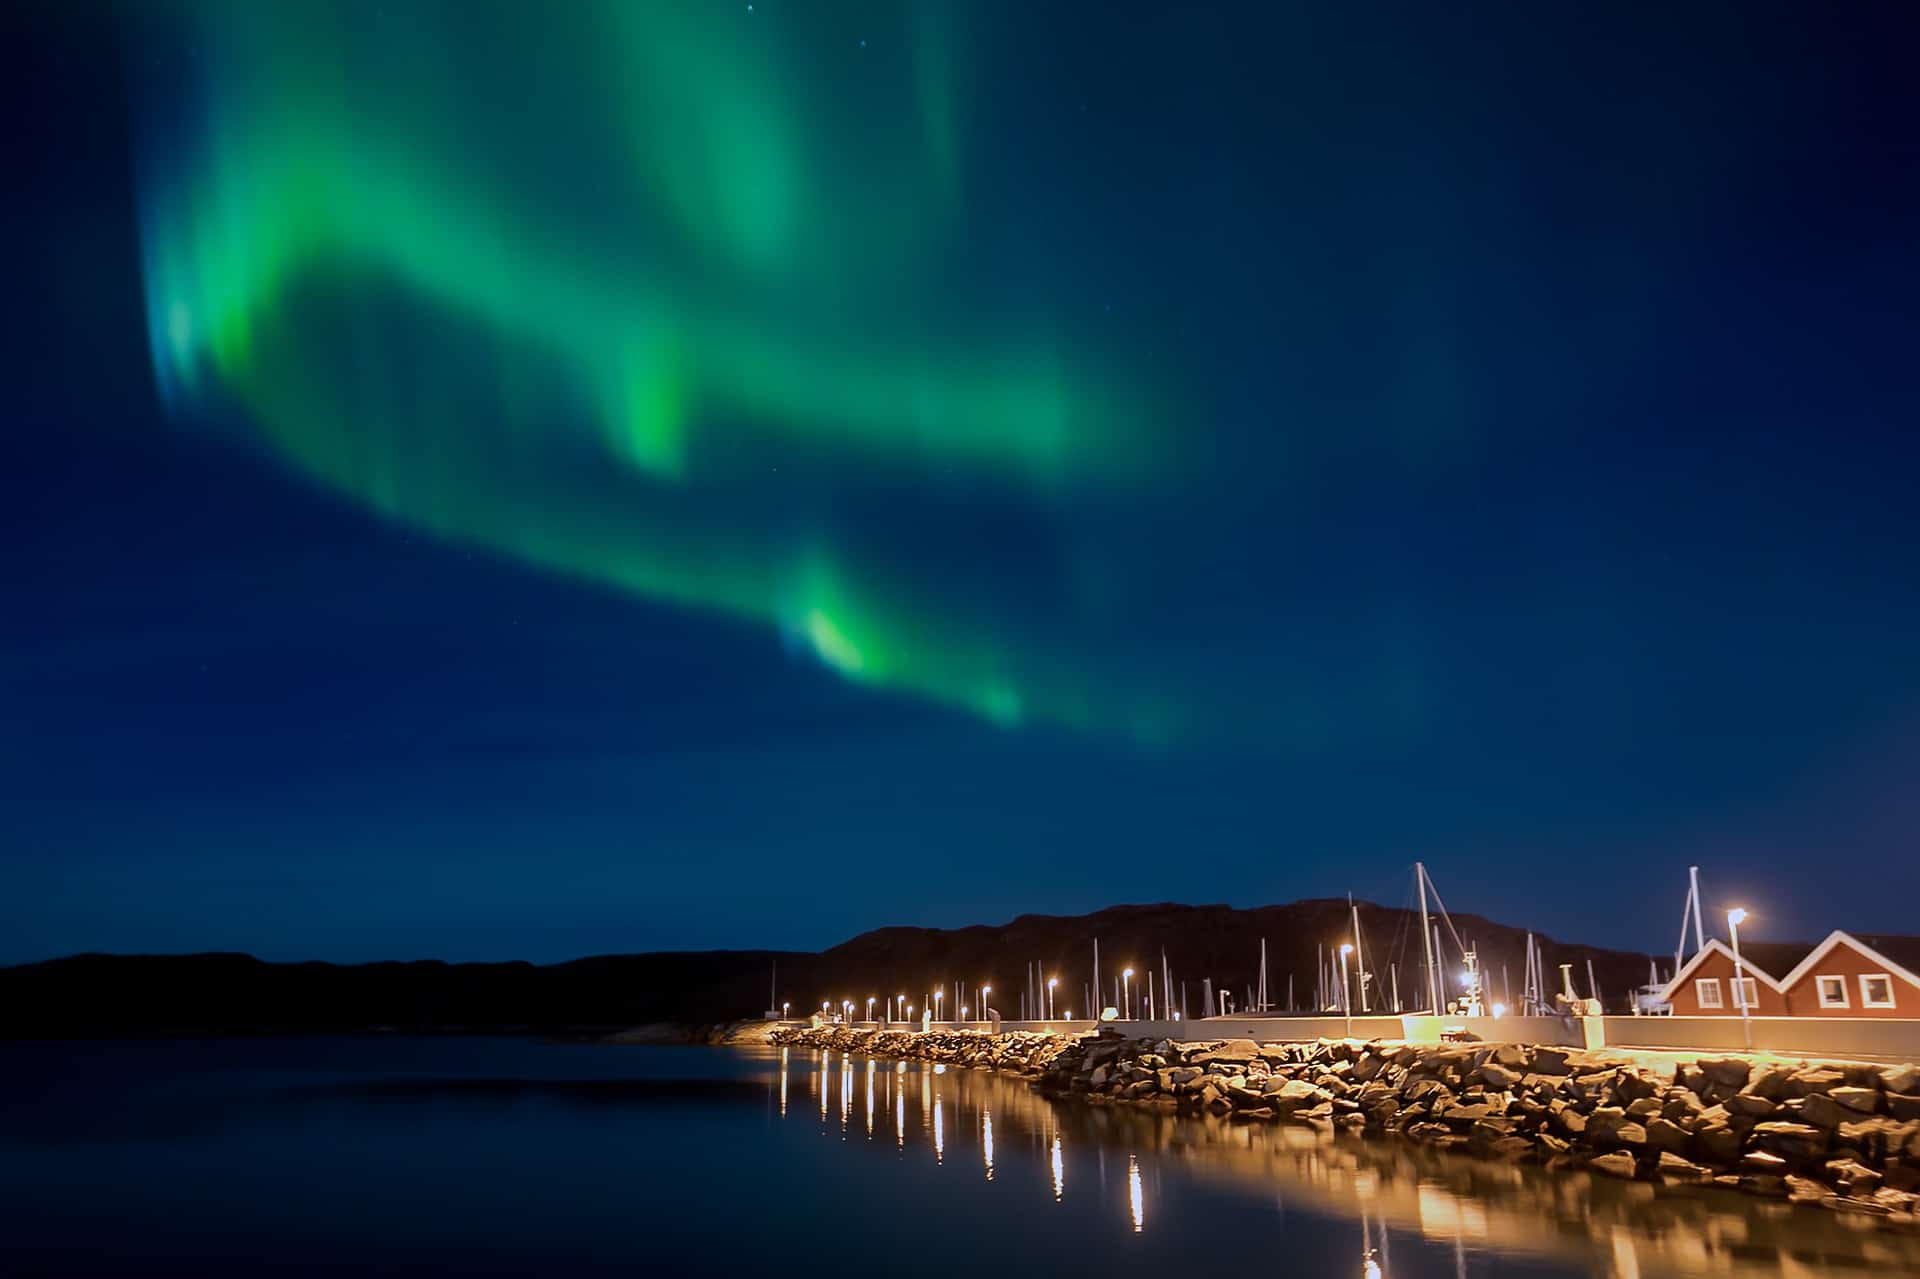 Northern Norway is one of the most pleasant and interesting places to watch the incredible colors of northern lights dance through the polar skies.